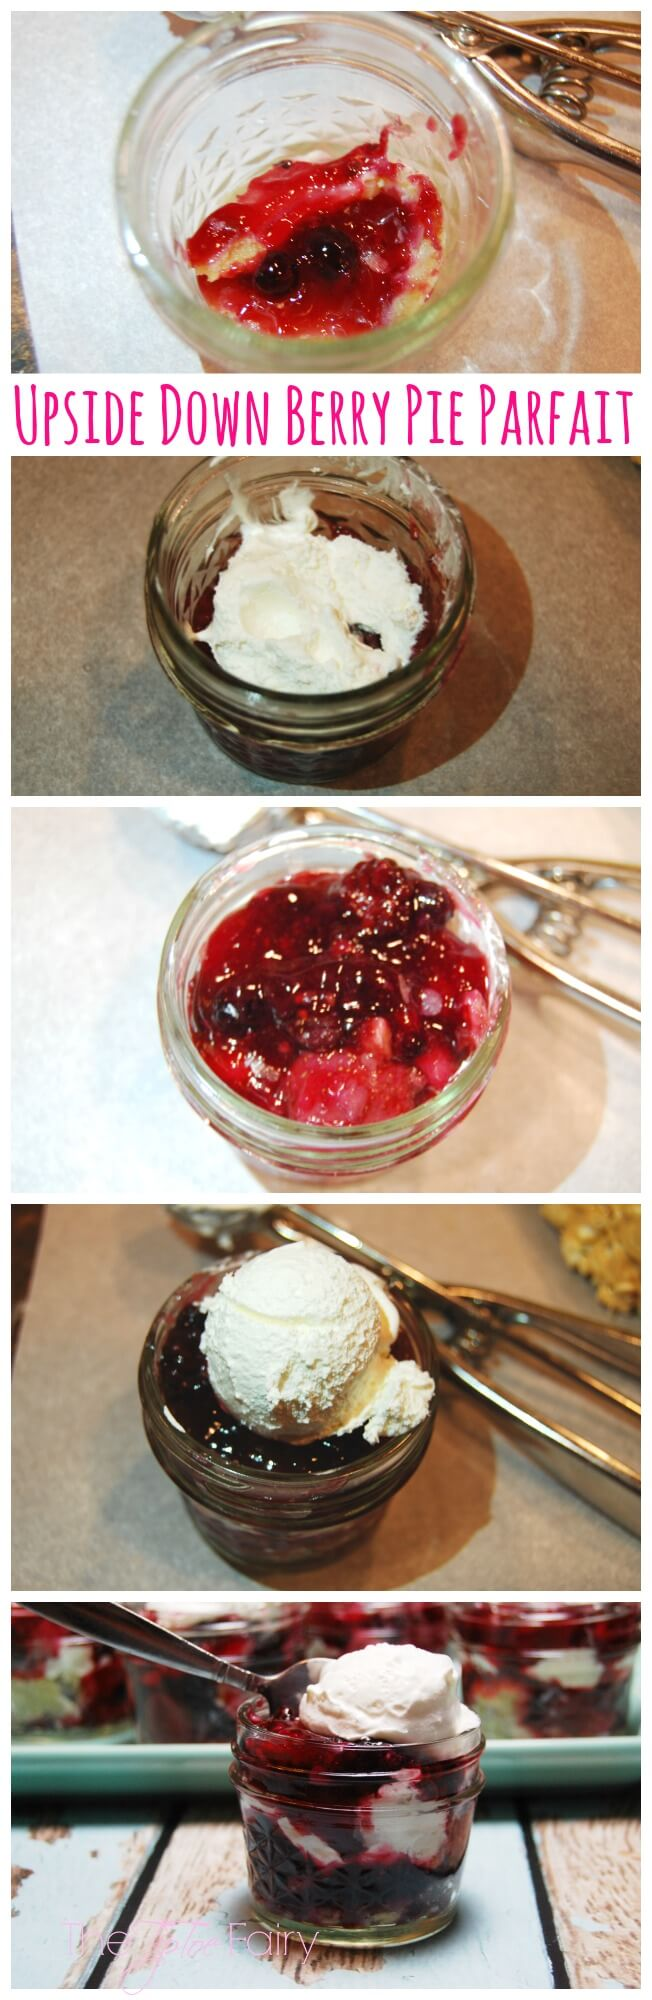 The Upside Down Berry Pie Parfait - Mrs. Smith Pie and Cool Whip - no one will ever know it wasn't homemade! Perfect for the holidays | The TipToeFairy #ThankfullySweet #ad #masonjars